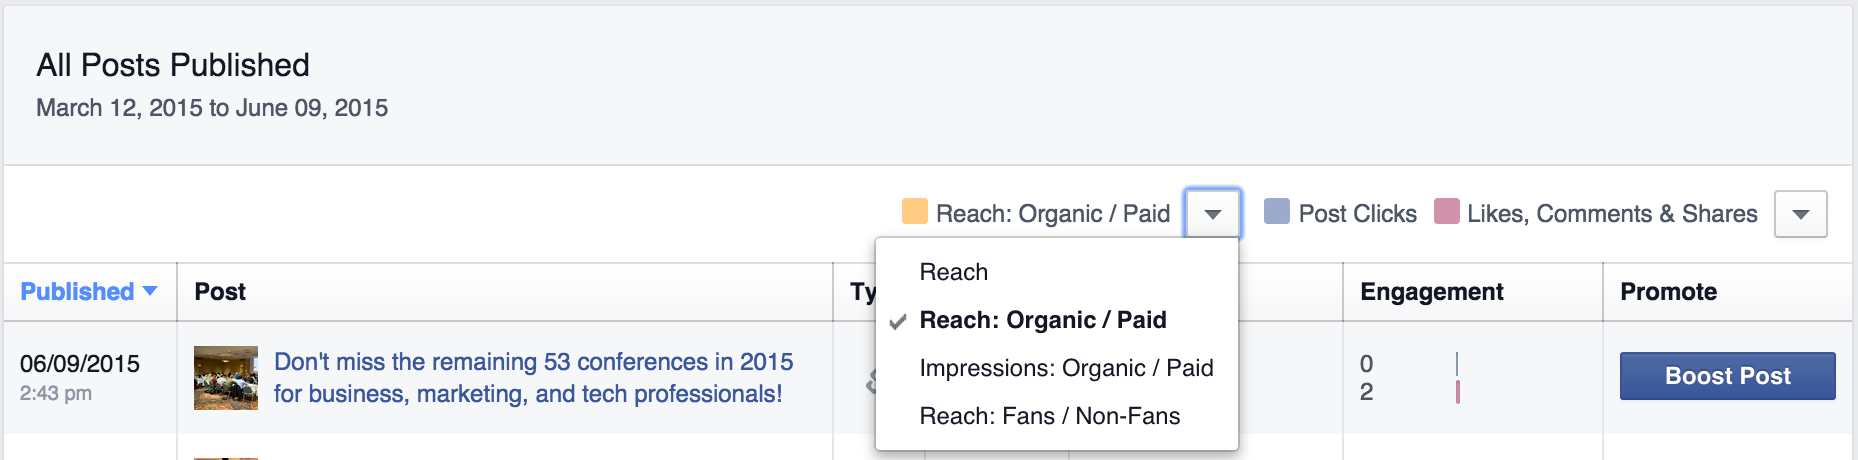 facebook metrics organic paid reach screenshot